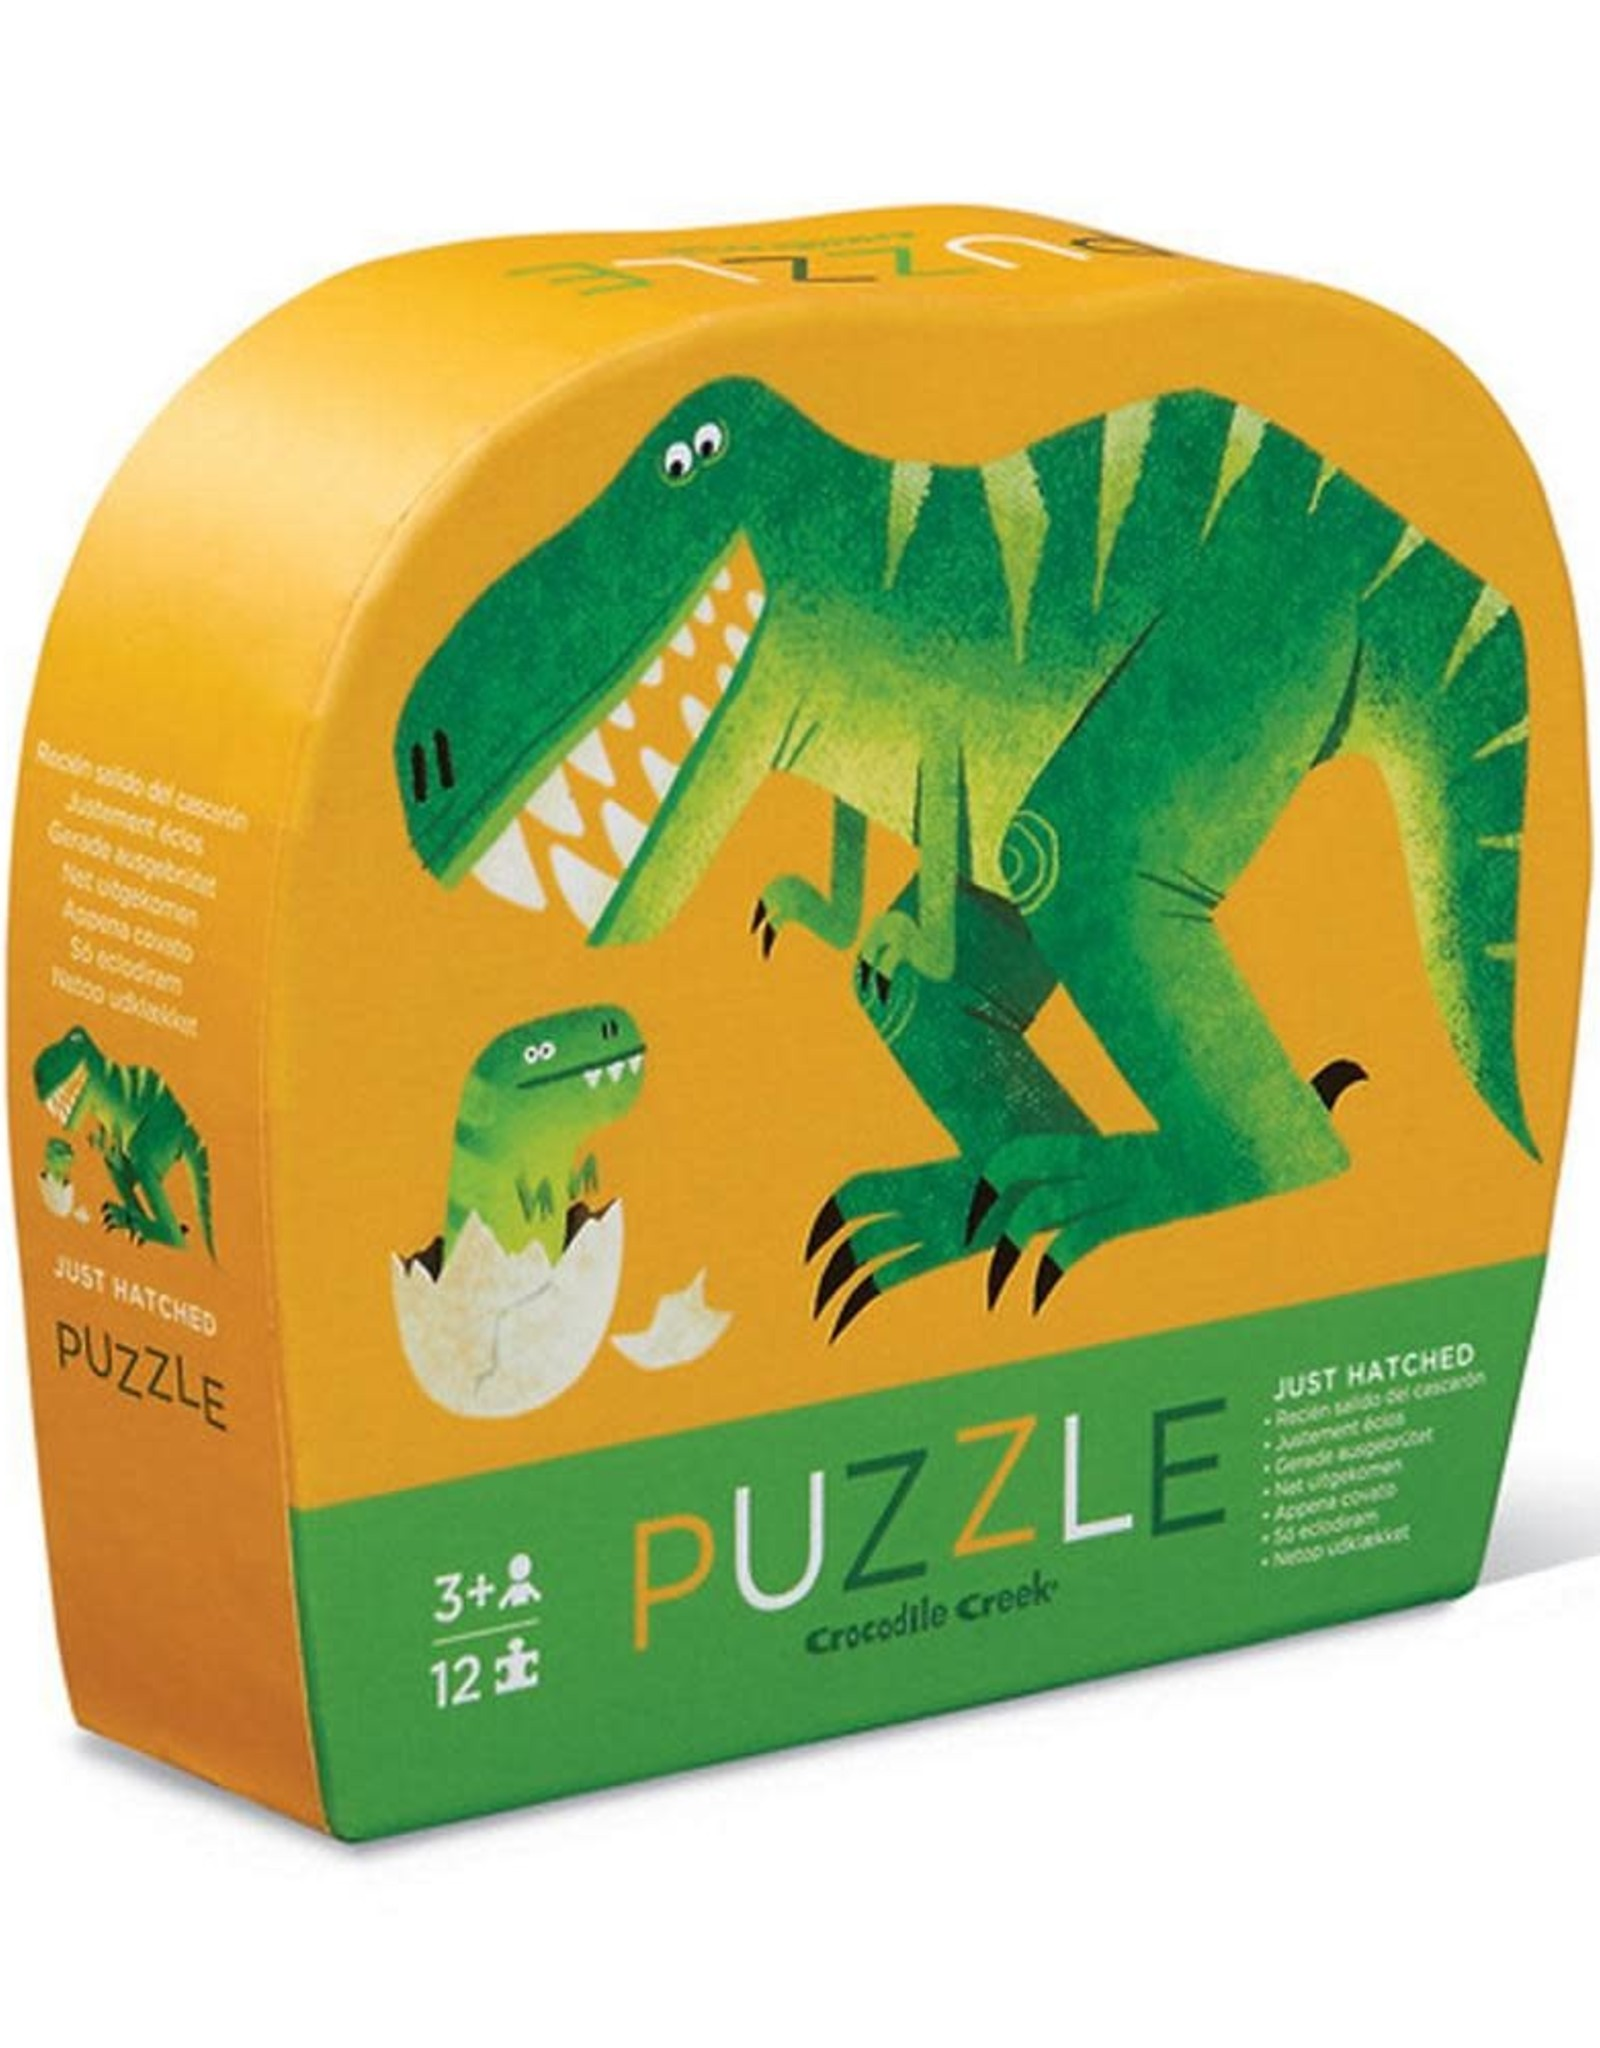 Crocodile Creek 12-PC MINI PUZZLE/JUST HATCHED